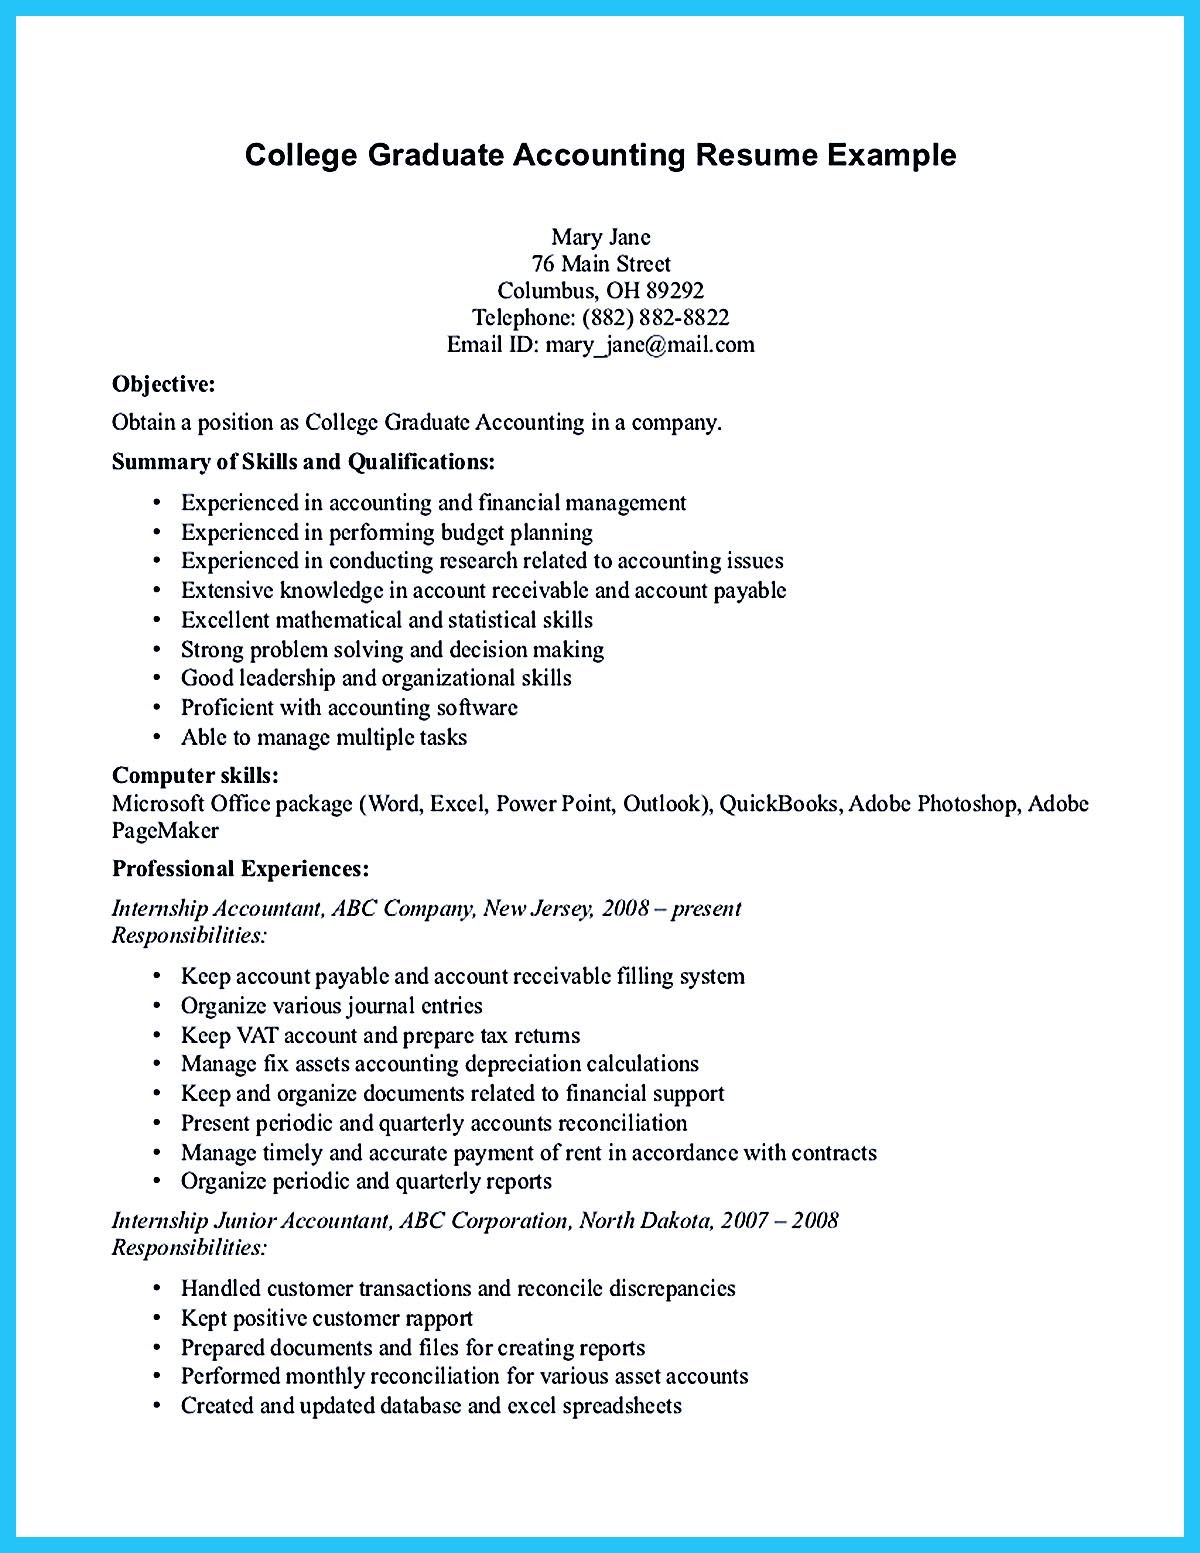 Resume For College Graduate Accounting Student Resume Here Presents How The Resume Of